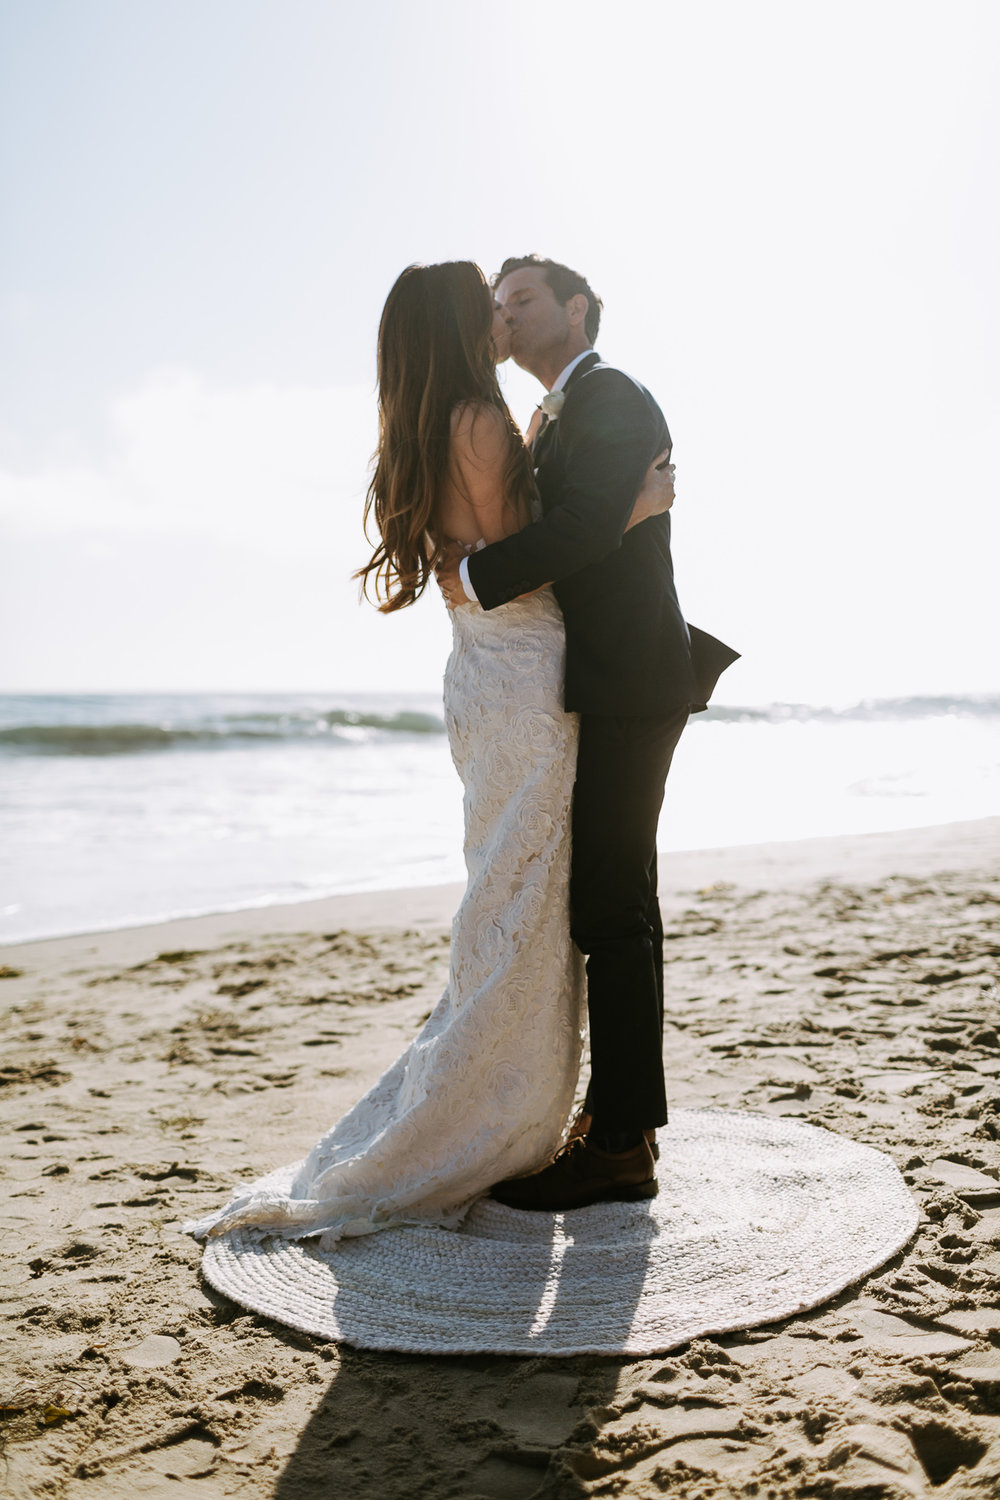 LagunaBeach-WeddingPhotographer-39.jpg